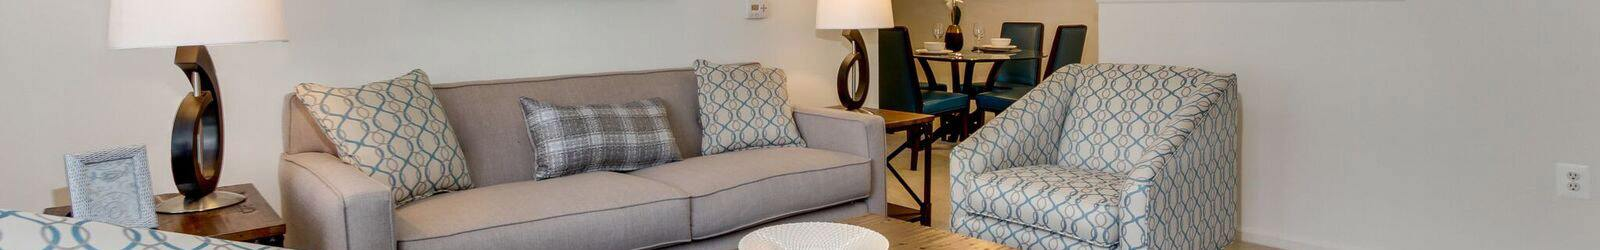 Contact Eagle Rock Apartments at Freehold for information about our apartments in Freehold